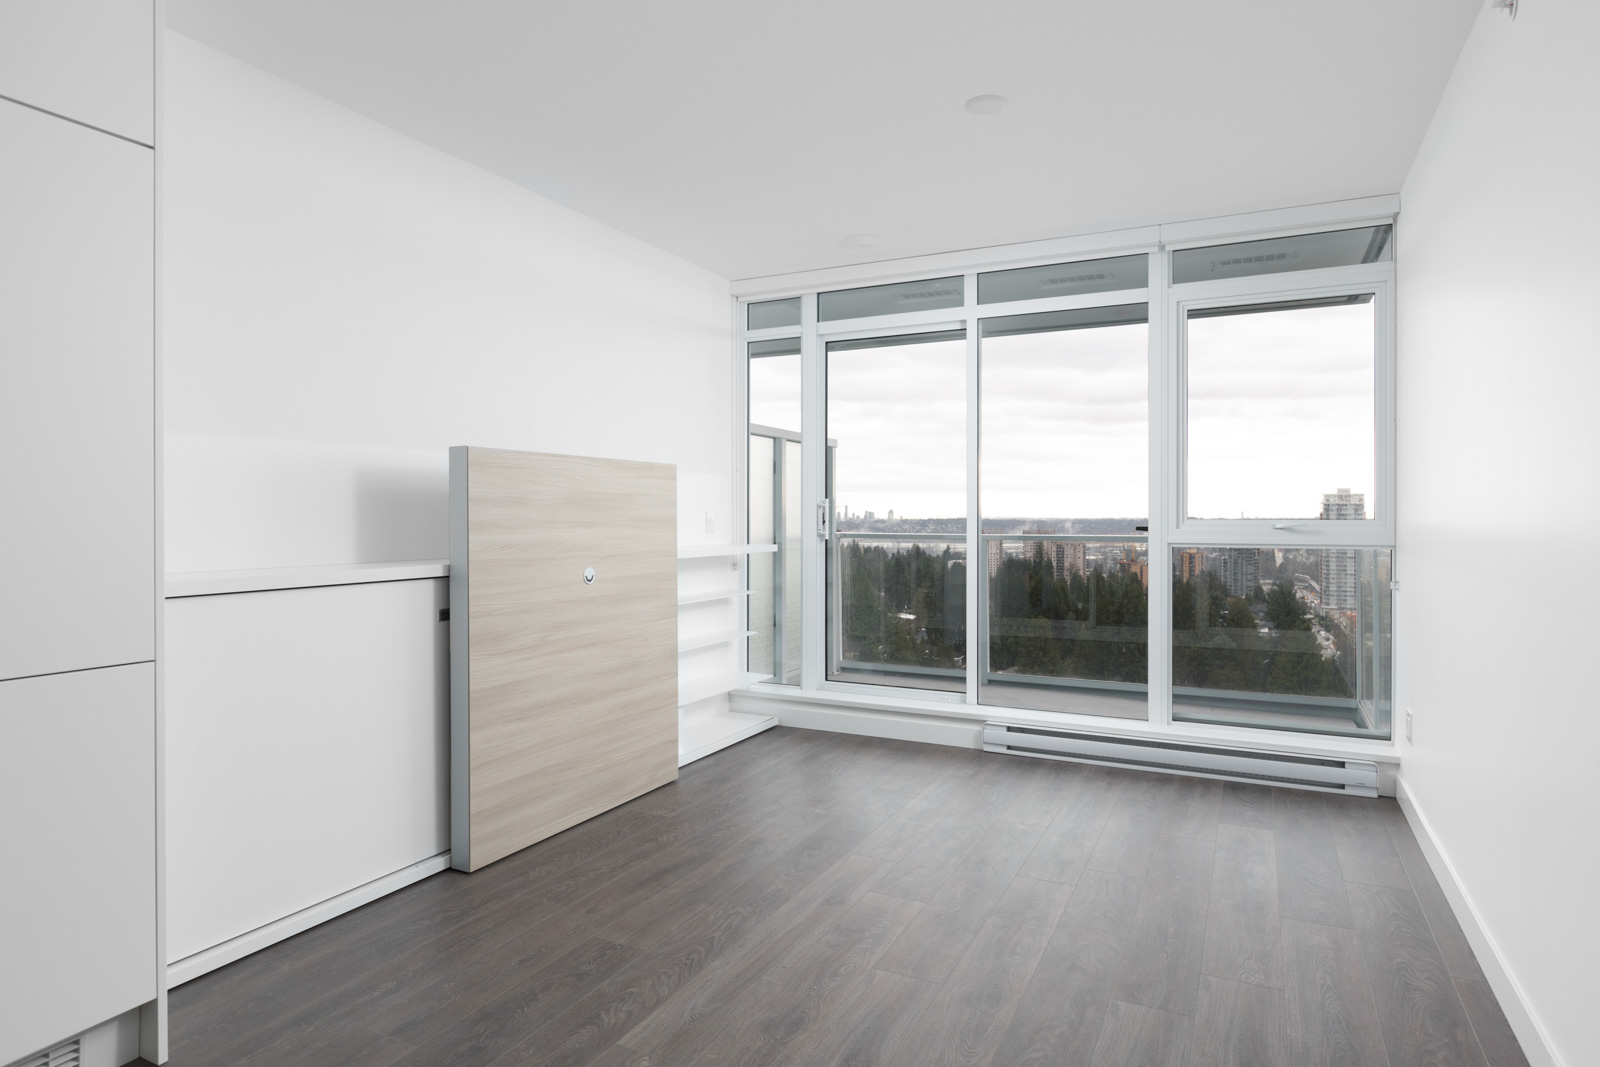 view of empty condo unit with hardwood floors and cabinet feature on left against white walls looking out floor to ceiling windows on right side